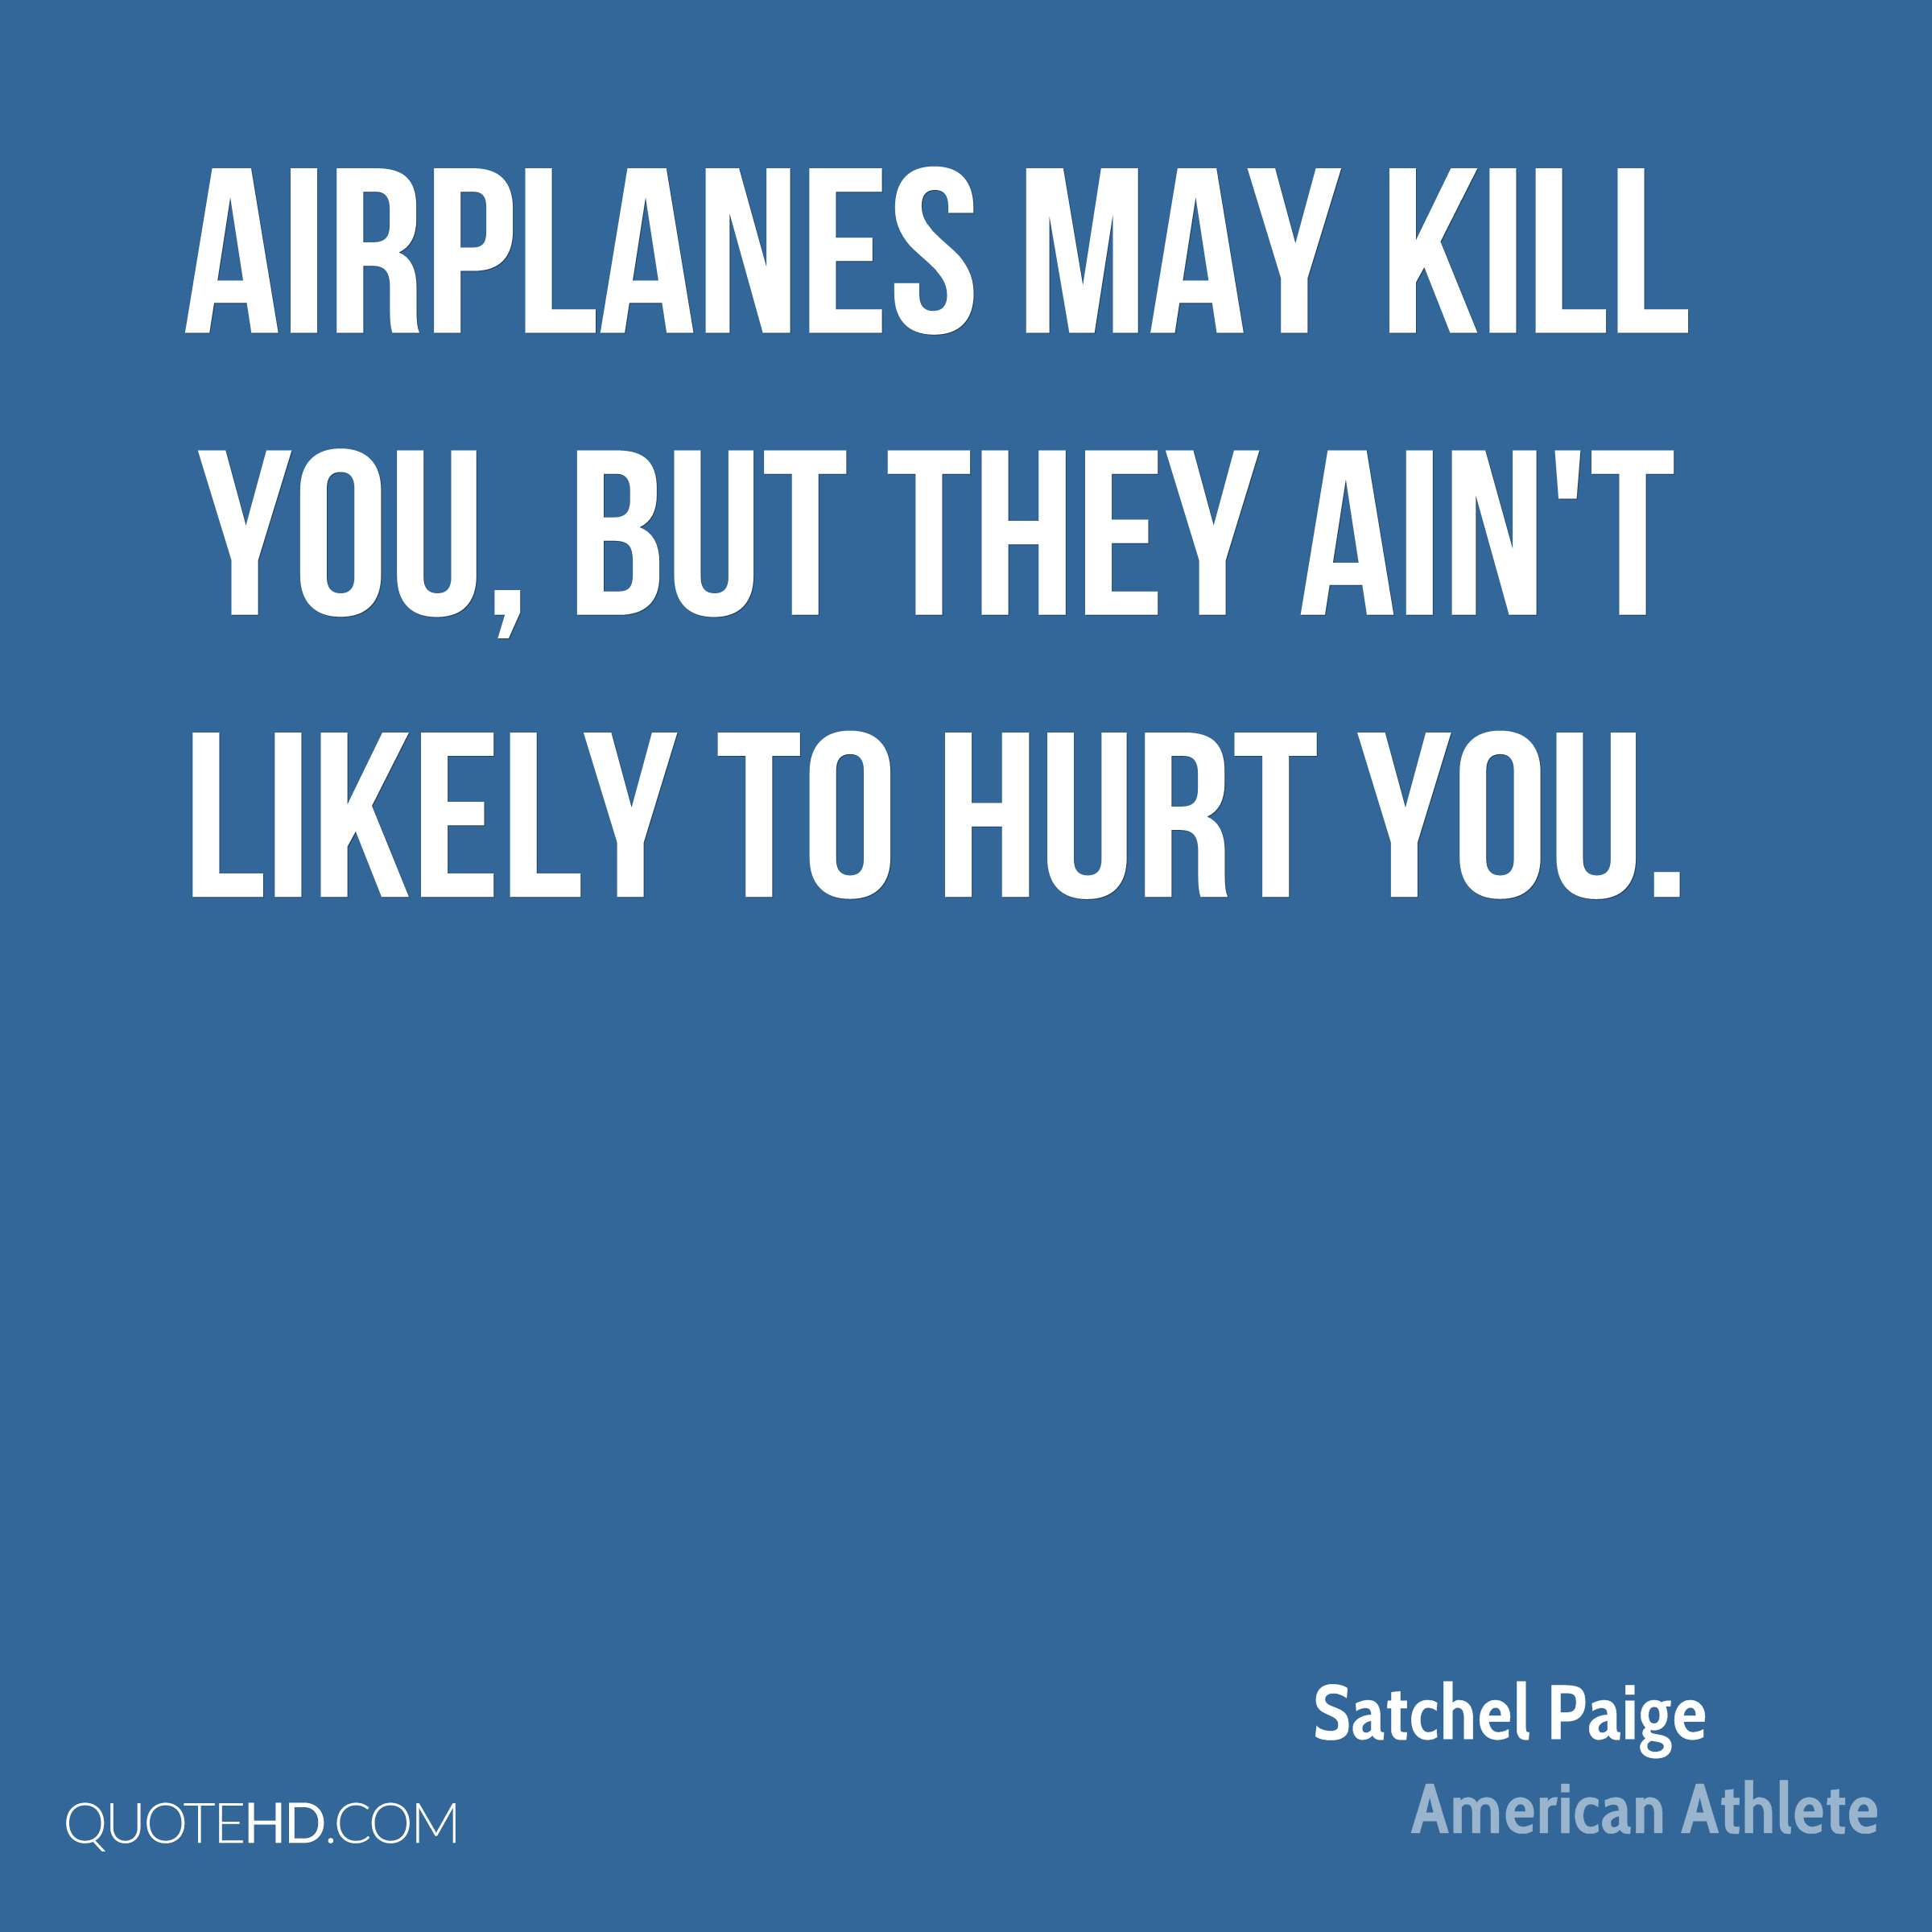 Airplanes may kill you, but they ain't likely to hurt you.